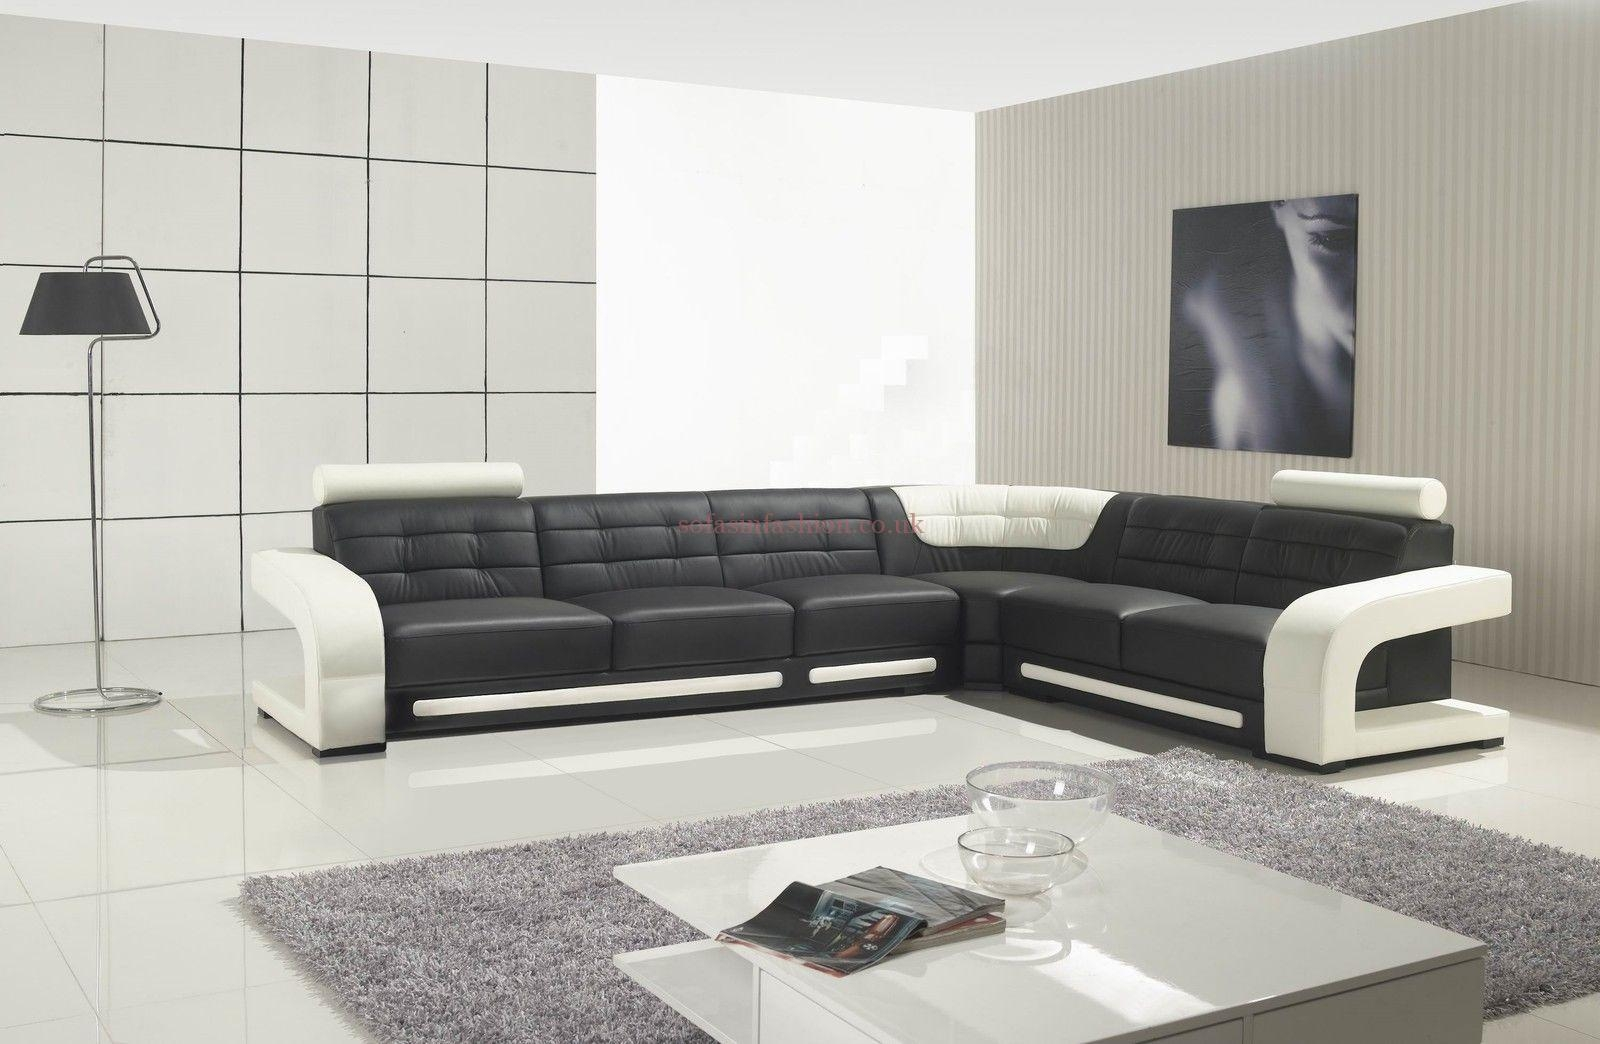 28 Leather Corner Sofas | Auto-Auctions pertaining to Leather Corner Sofas